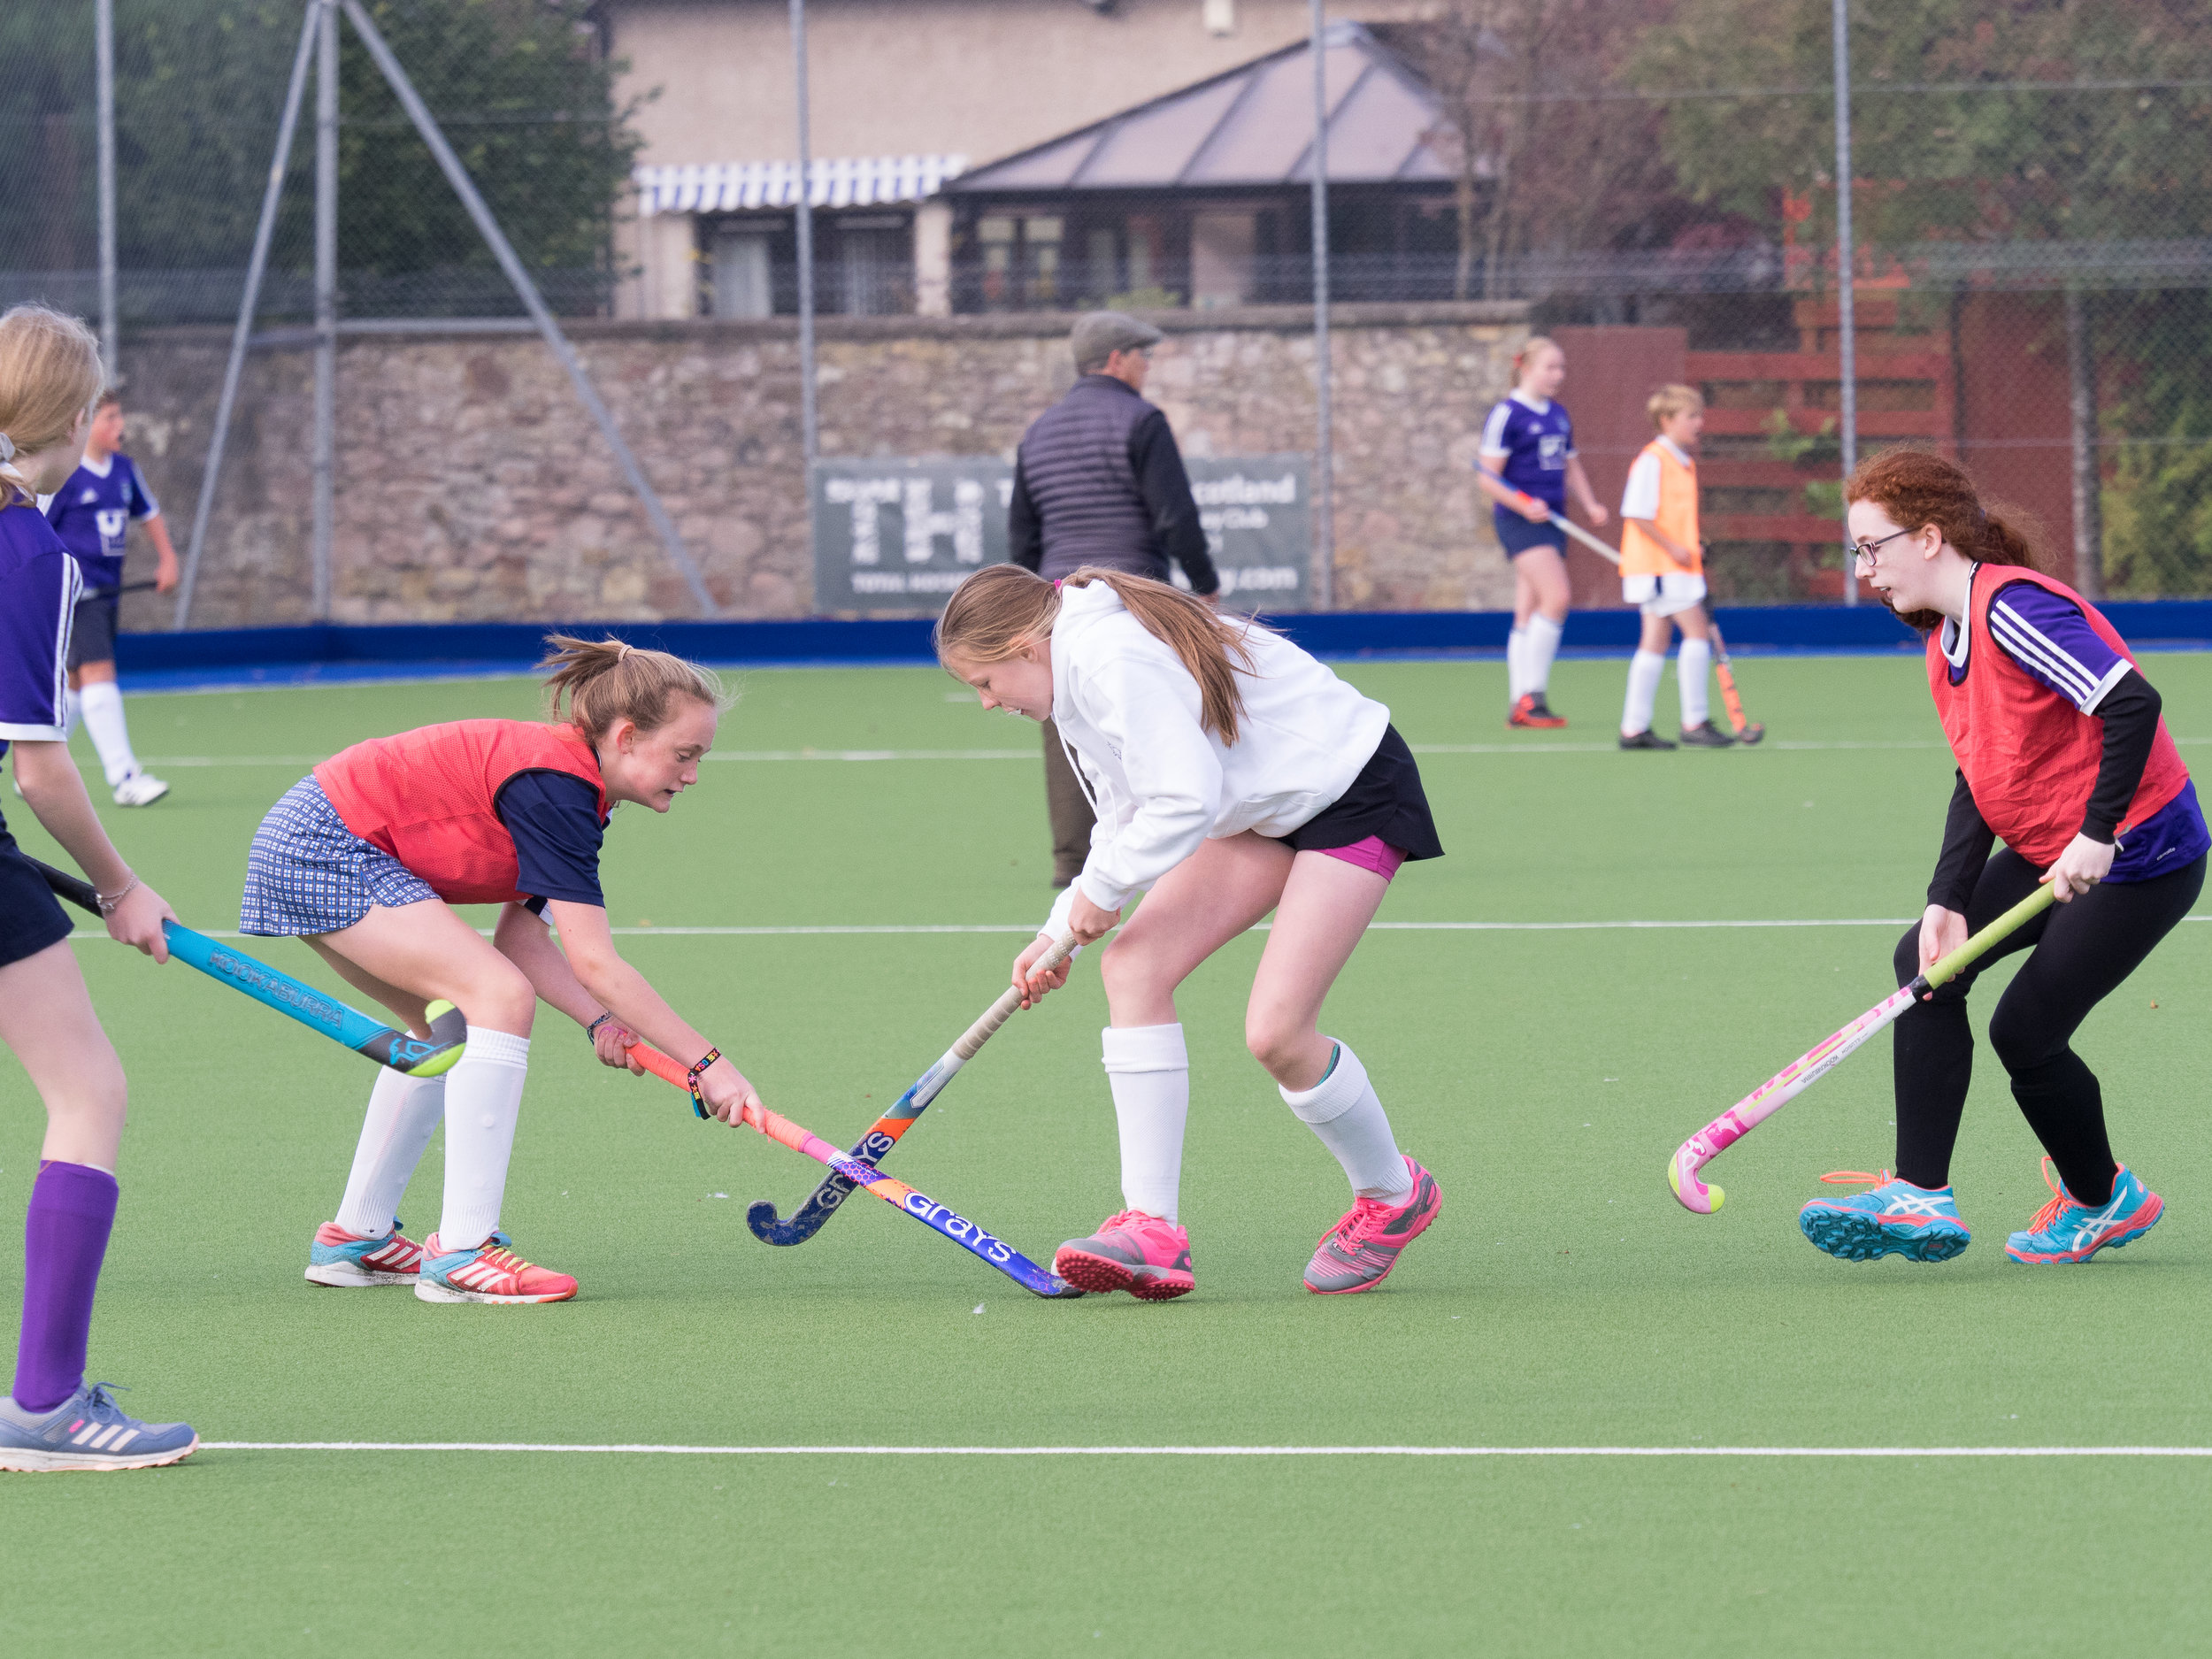 Kinross Hockey Sept 30th-21.jpg